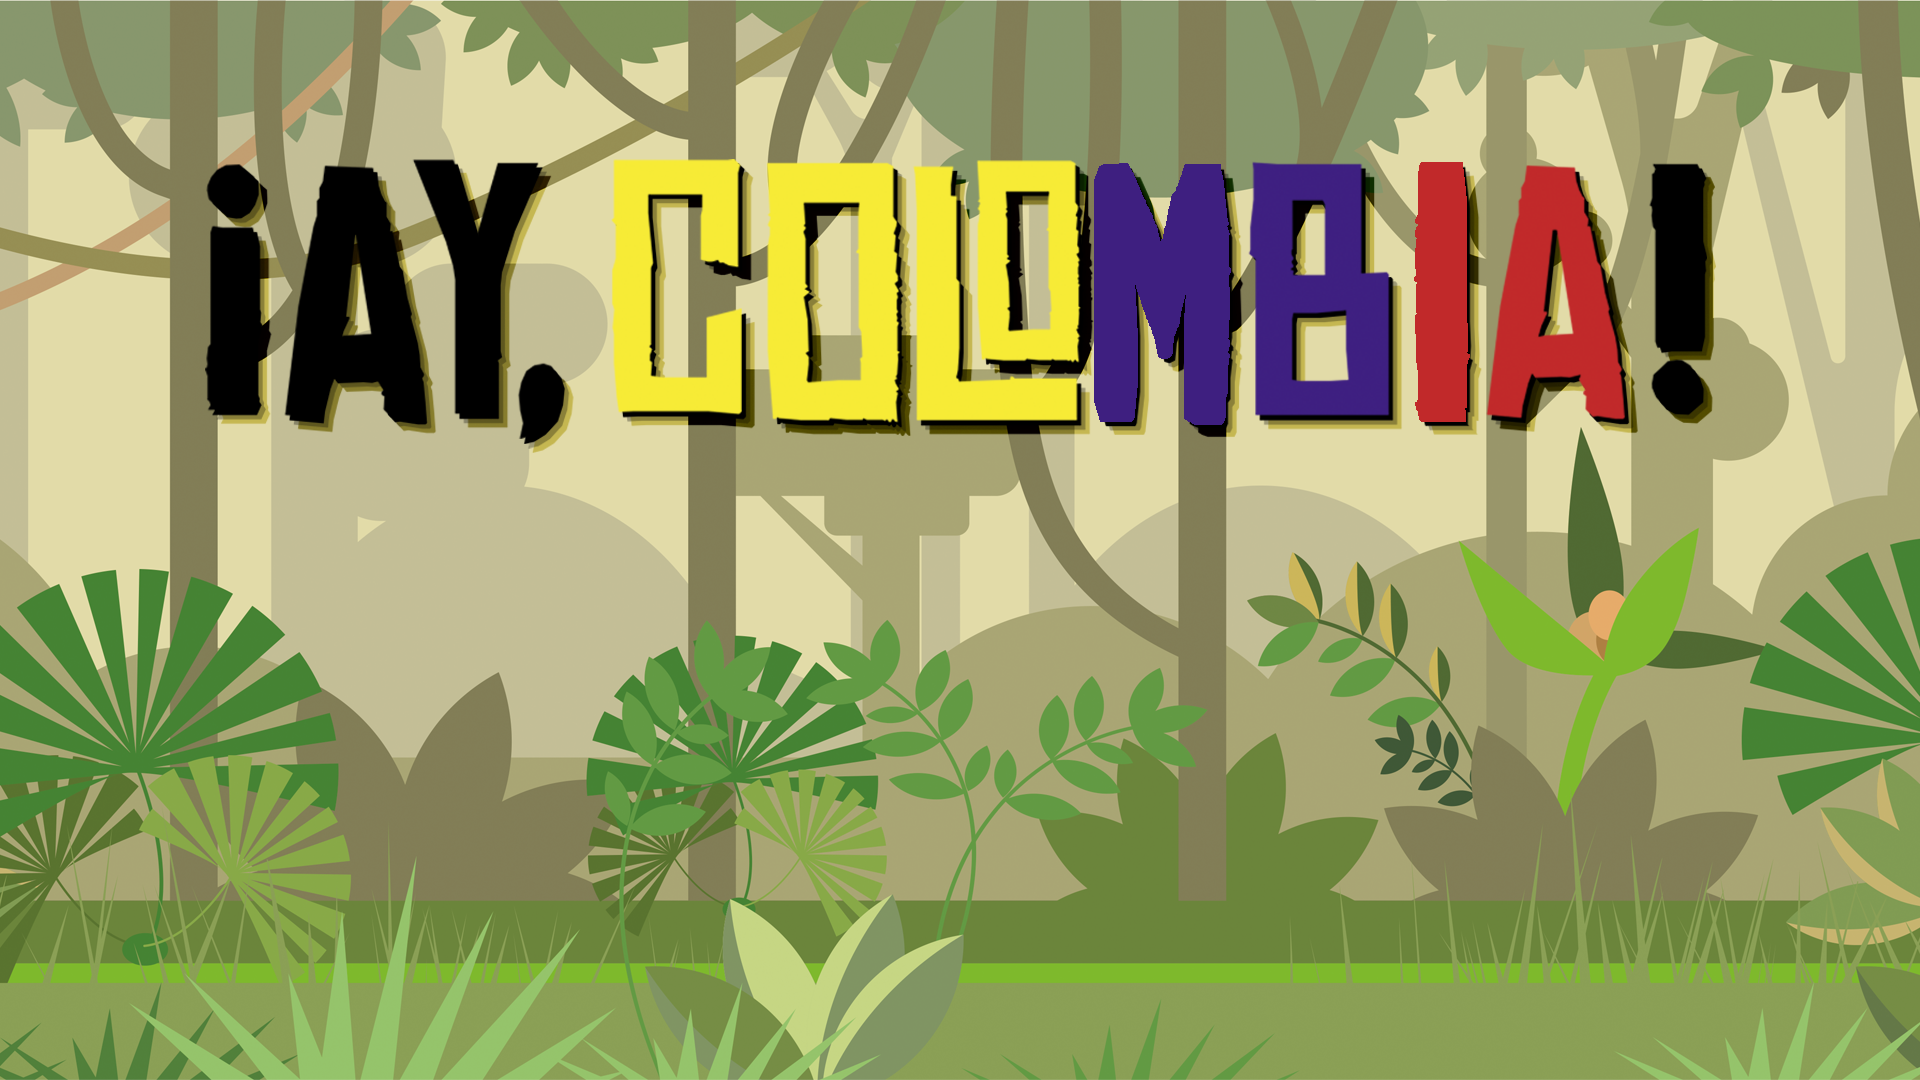 ¡Ay, Colombia!